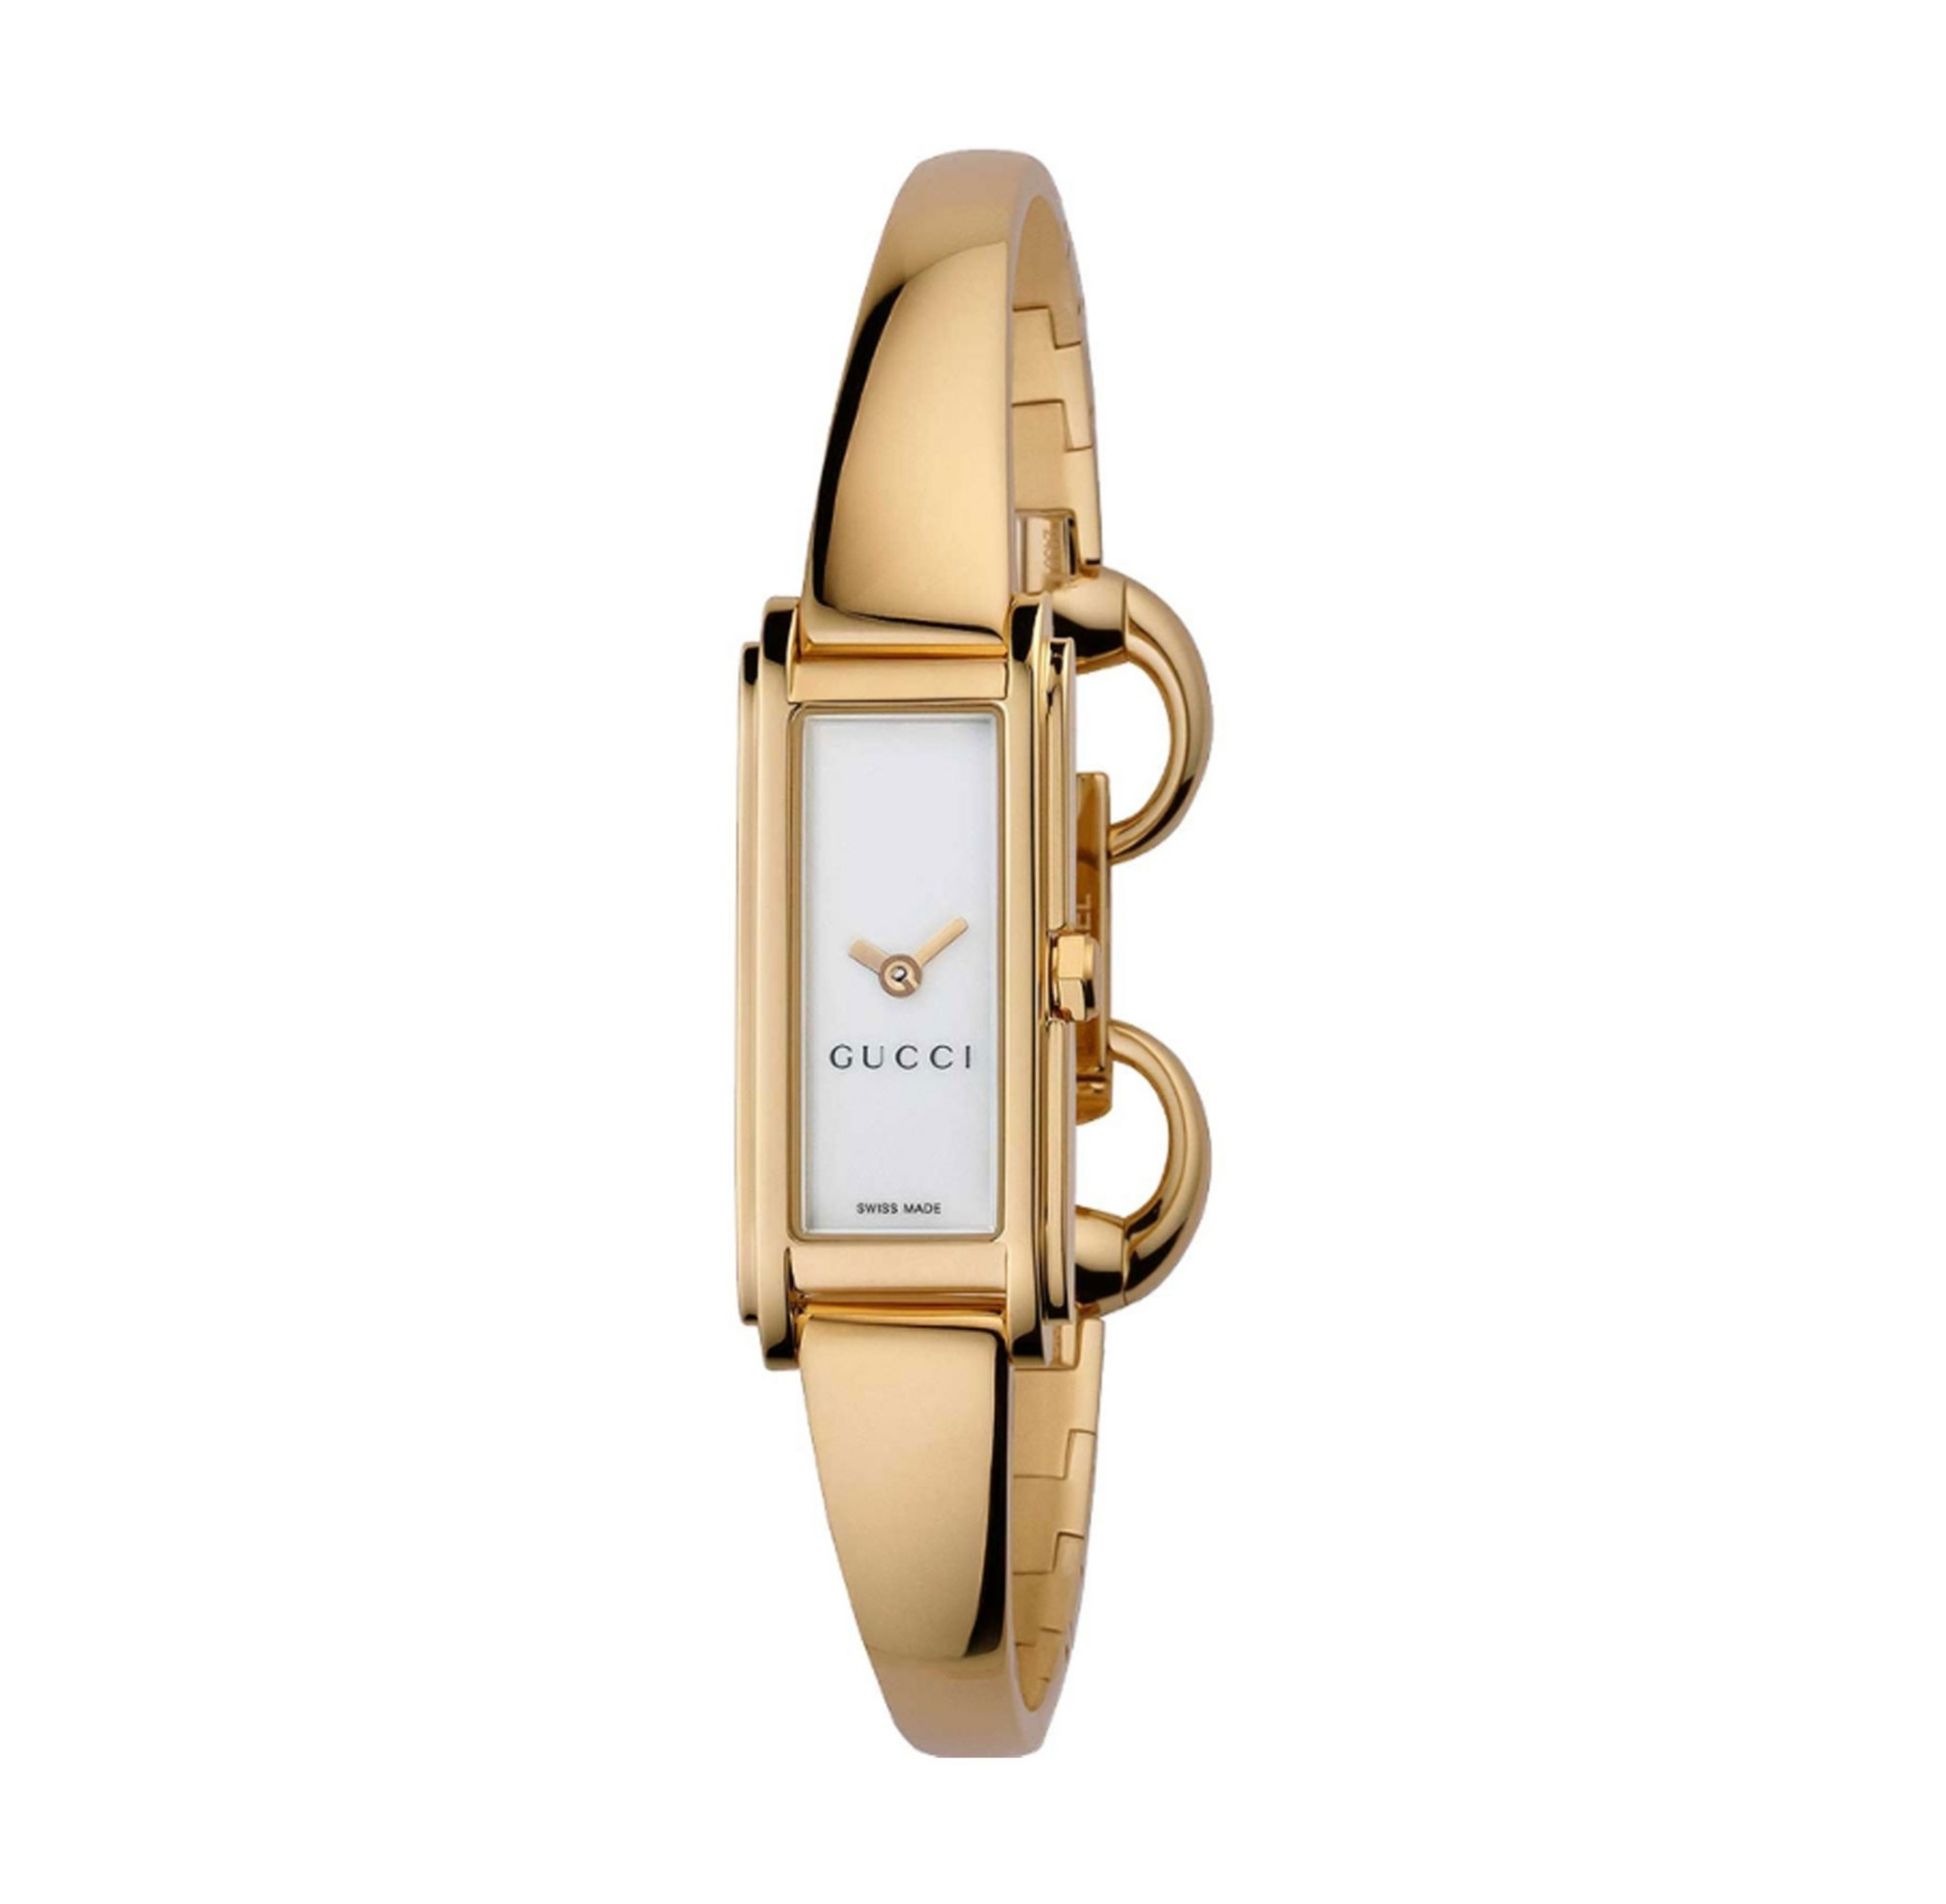 c1bdcaadf44 Gucci Ya109527 Women s G Line Gold Plated Mother Of Pearl Bangle ...